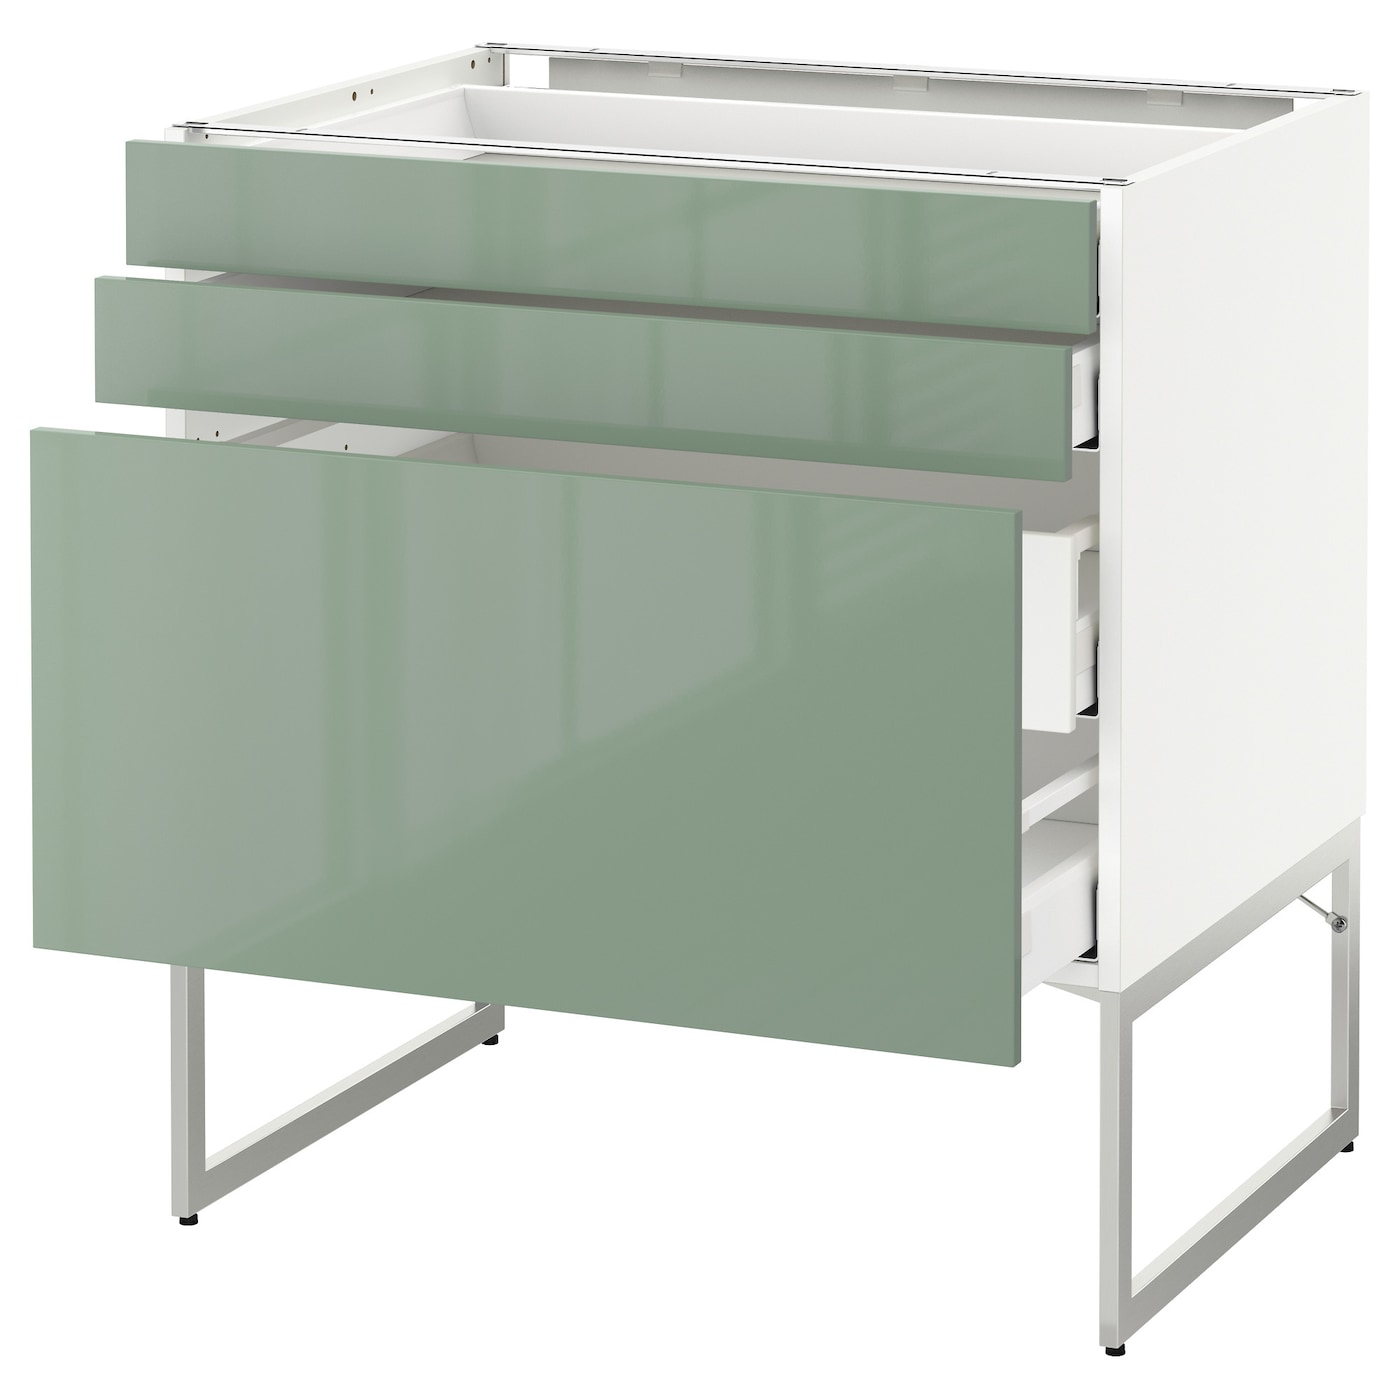 IKEA METOD/MAXIMERA base cab 3 fronts/2 low/2 med drwrs Smooth-running drawers with stop.